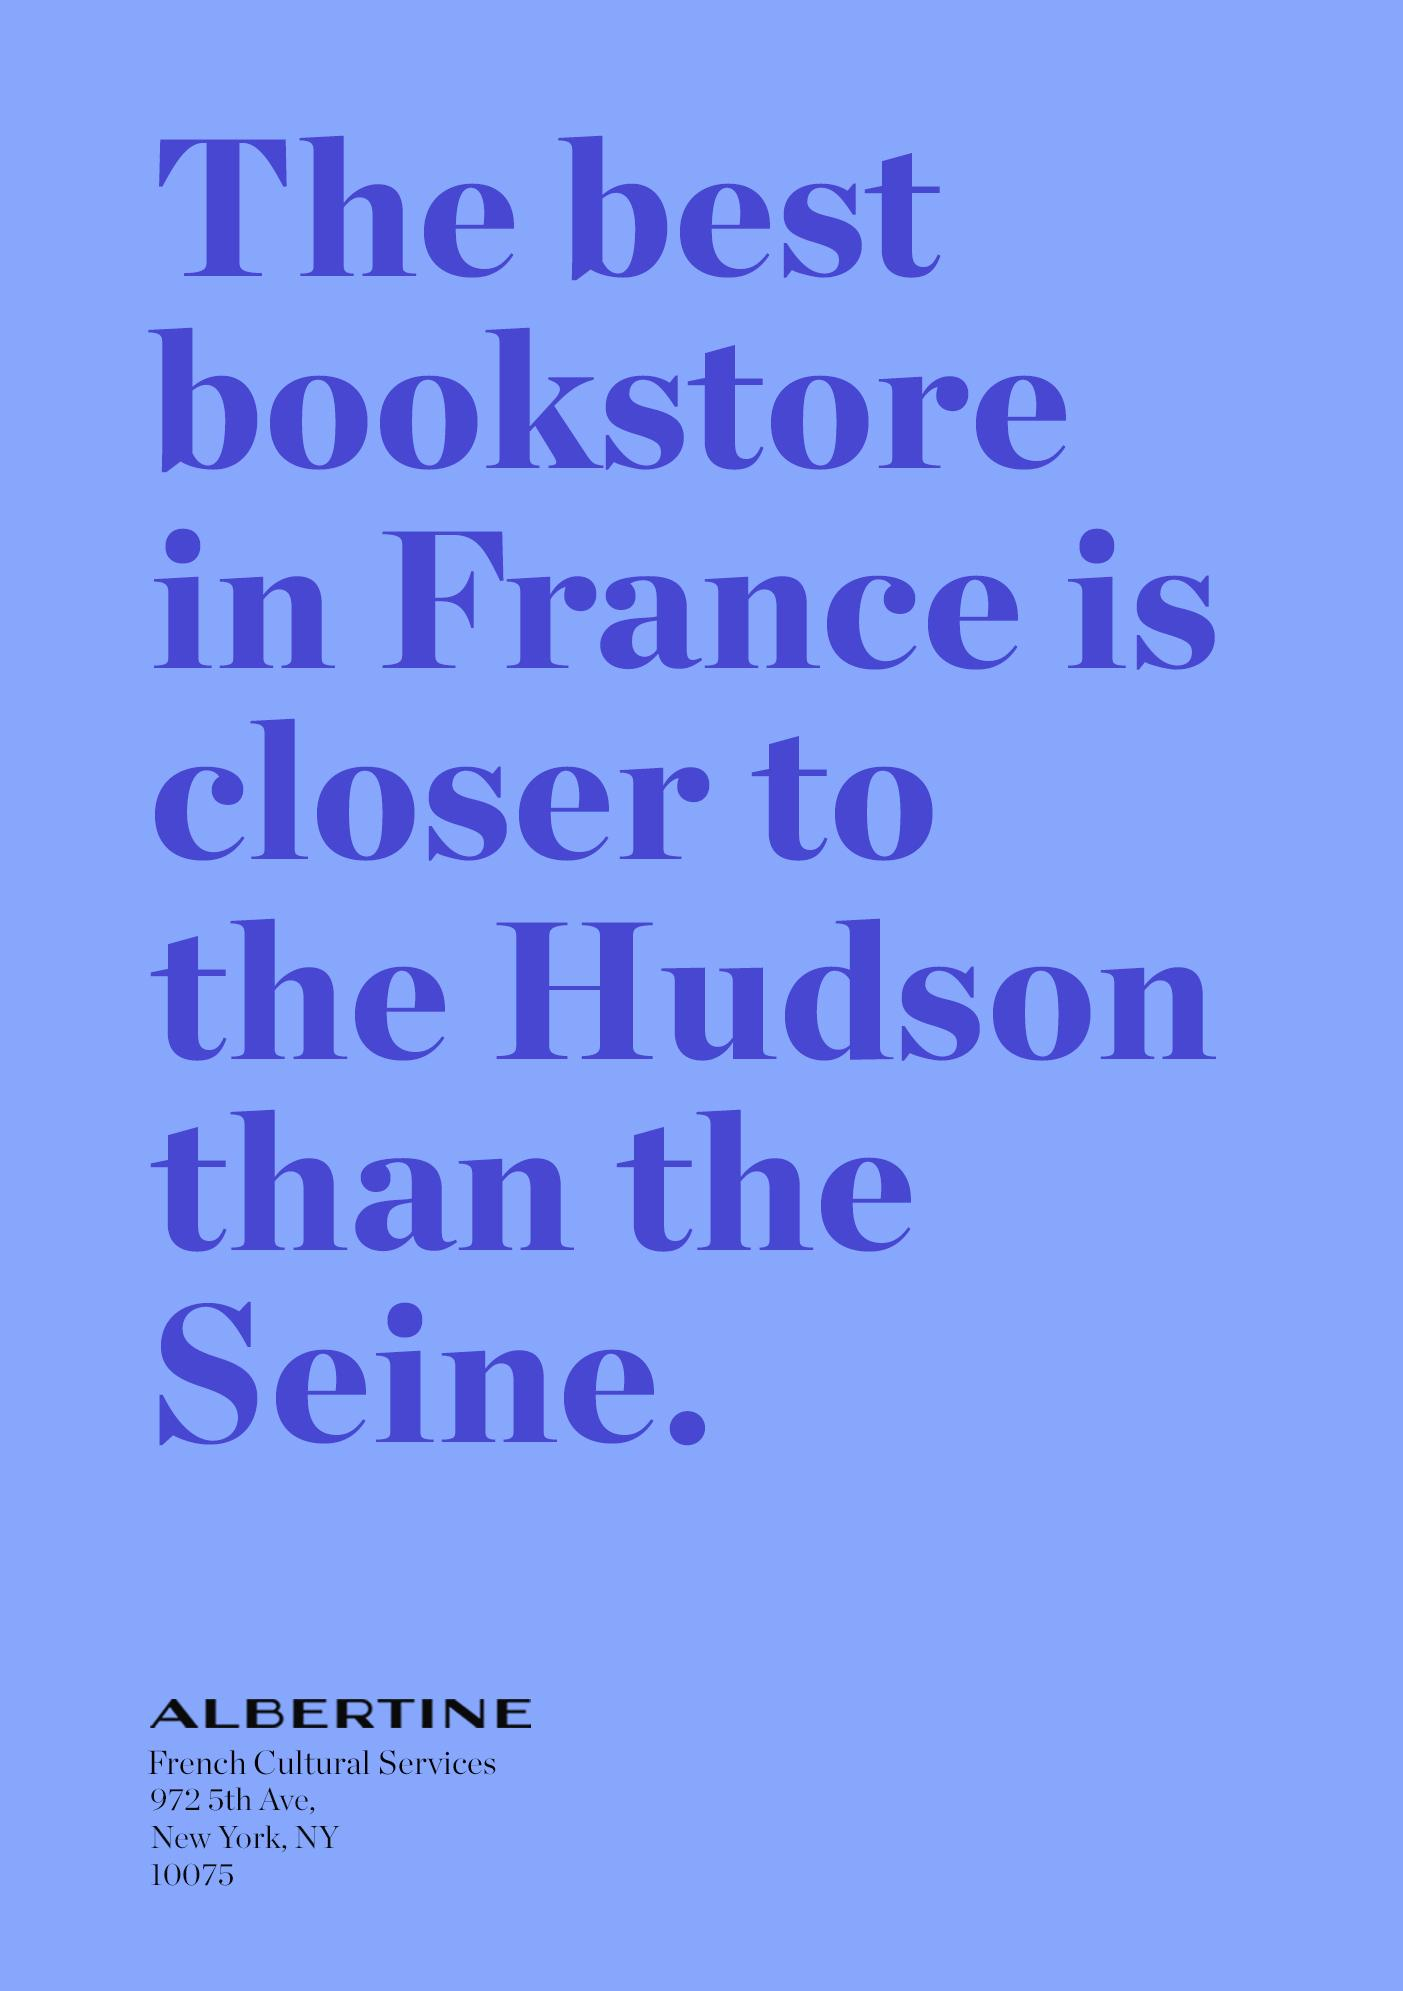 Albertine Outdoor Ad - The Best Bookstore In France Is In NY, 1